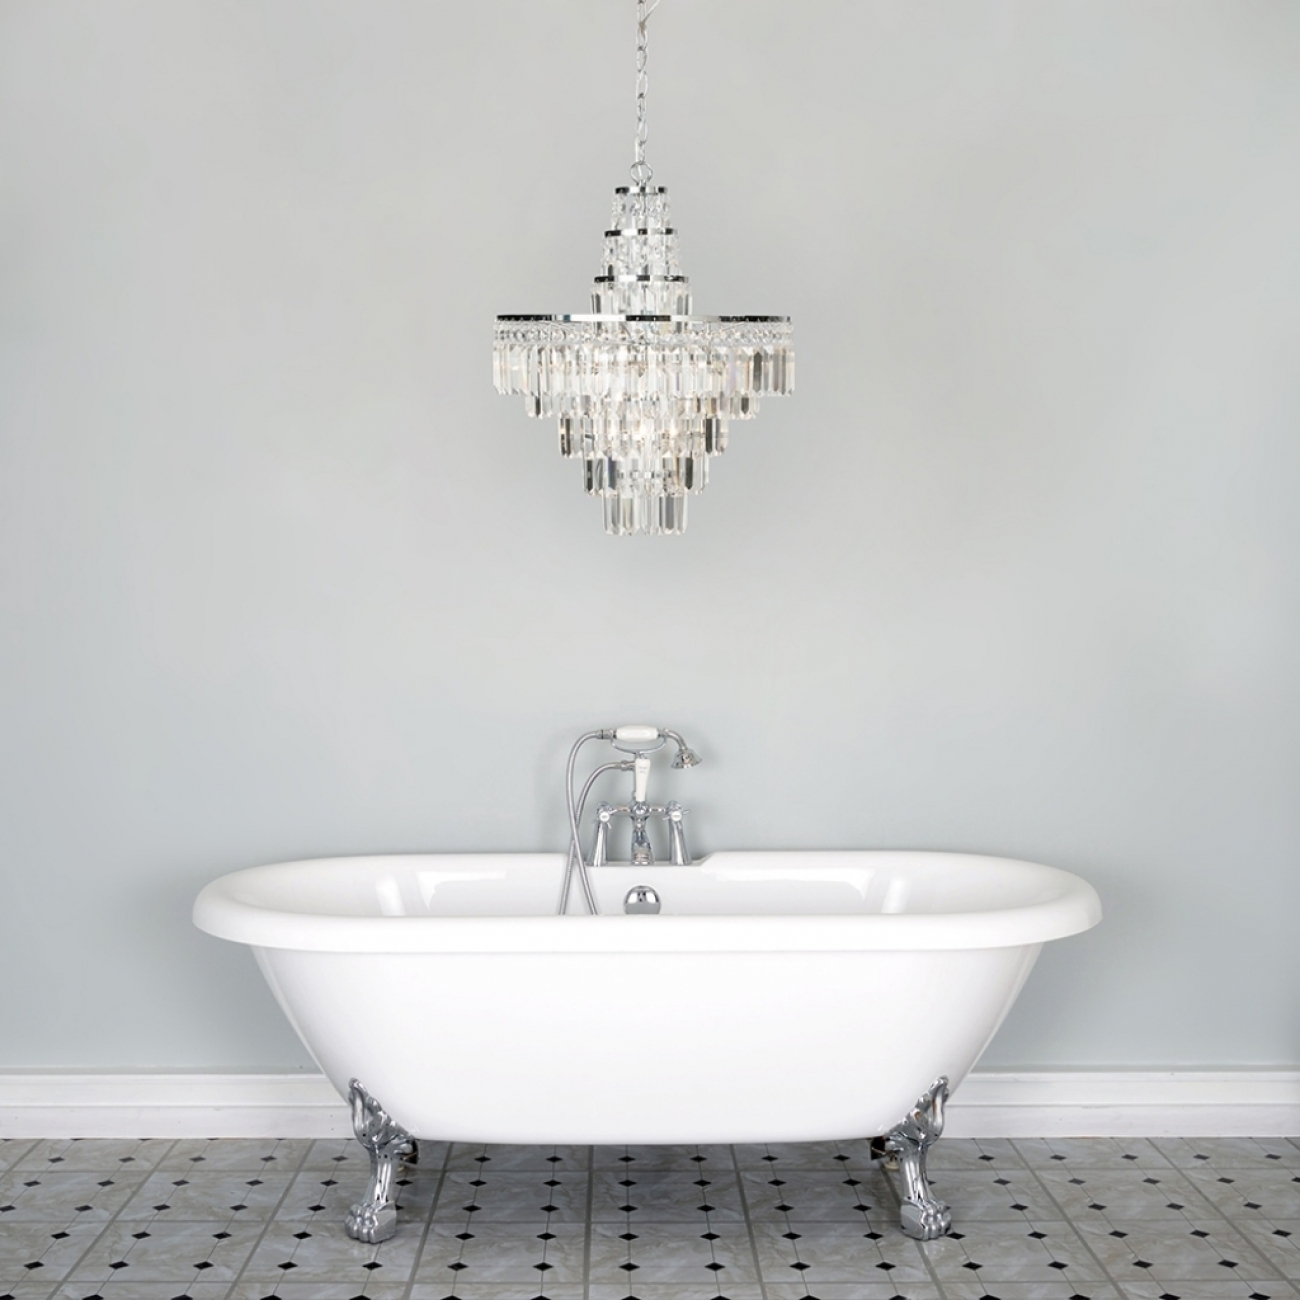 Fabulous Bathroom Chandelier Lighting With Regard To Modern Bathroom Chandelier Lighting (Image 15 of 25)